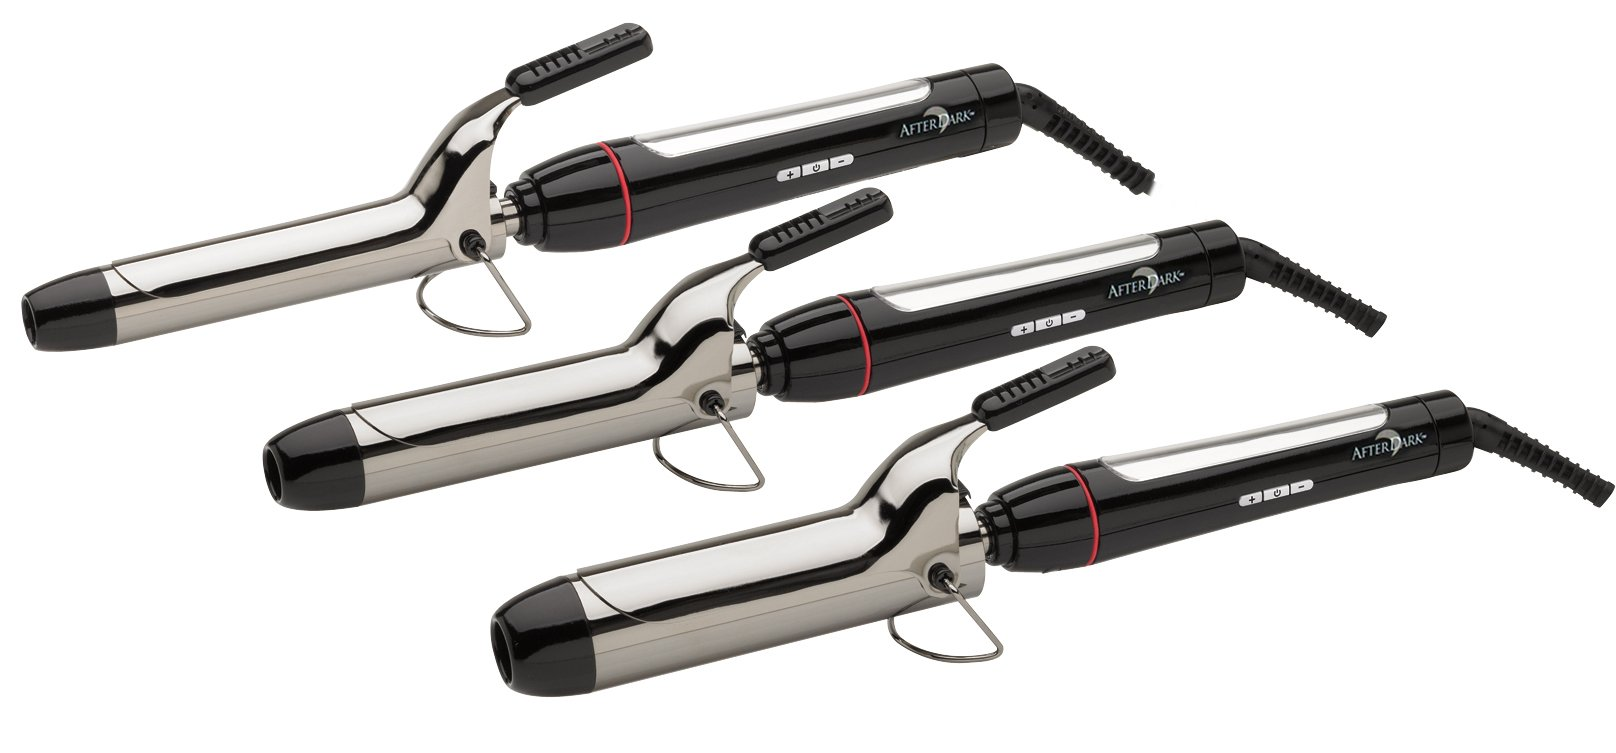 Brazilian Heat After Dark Introduces New Curling Irons